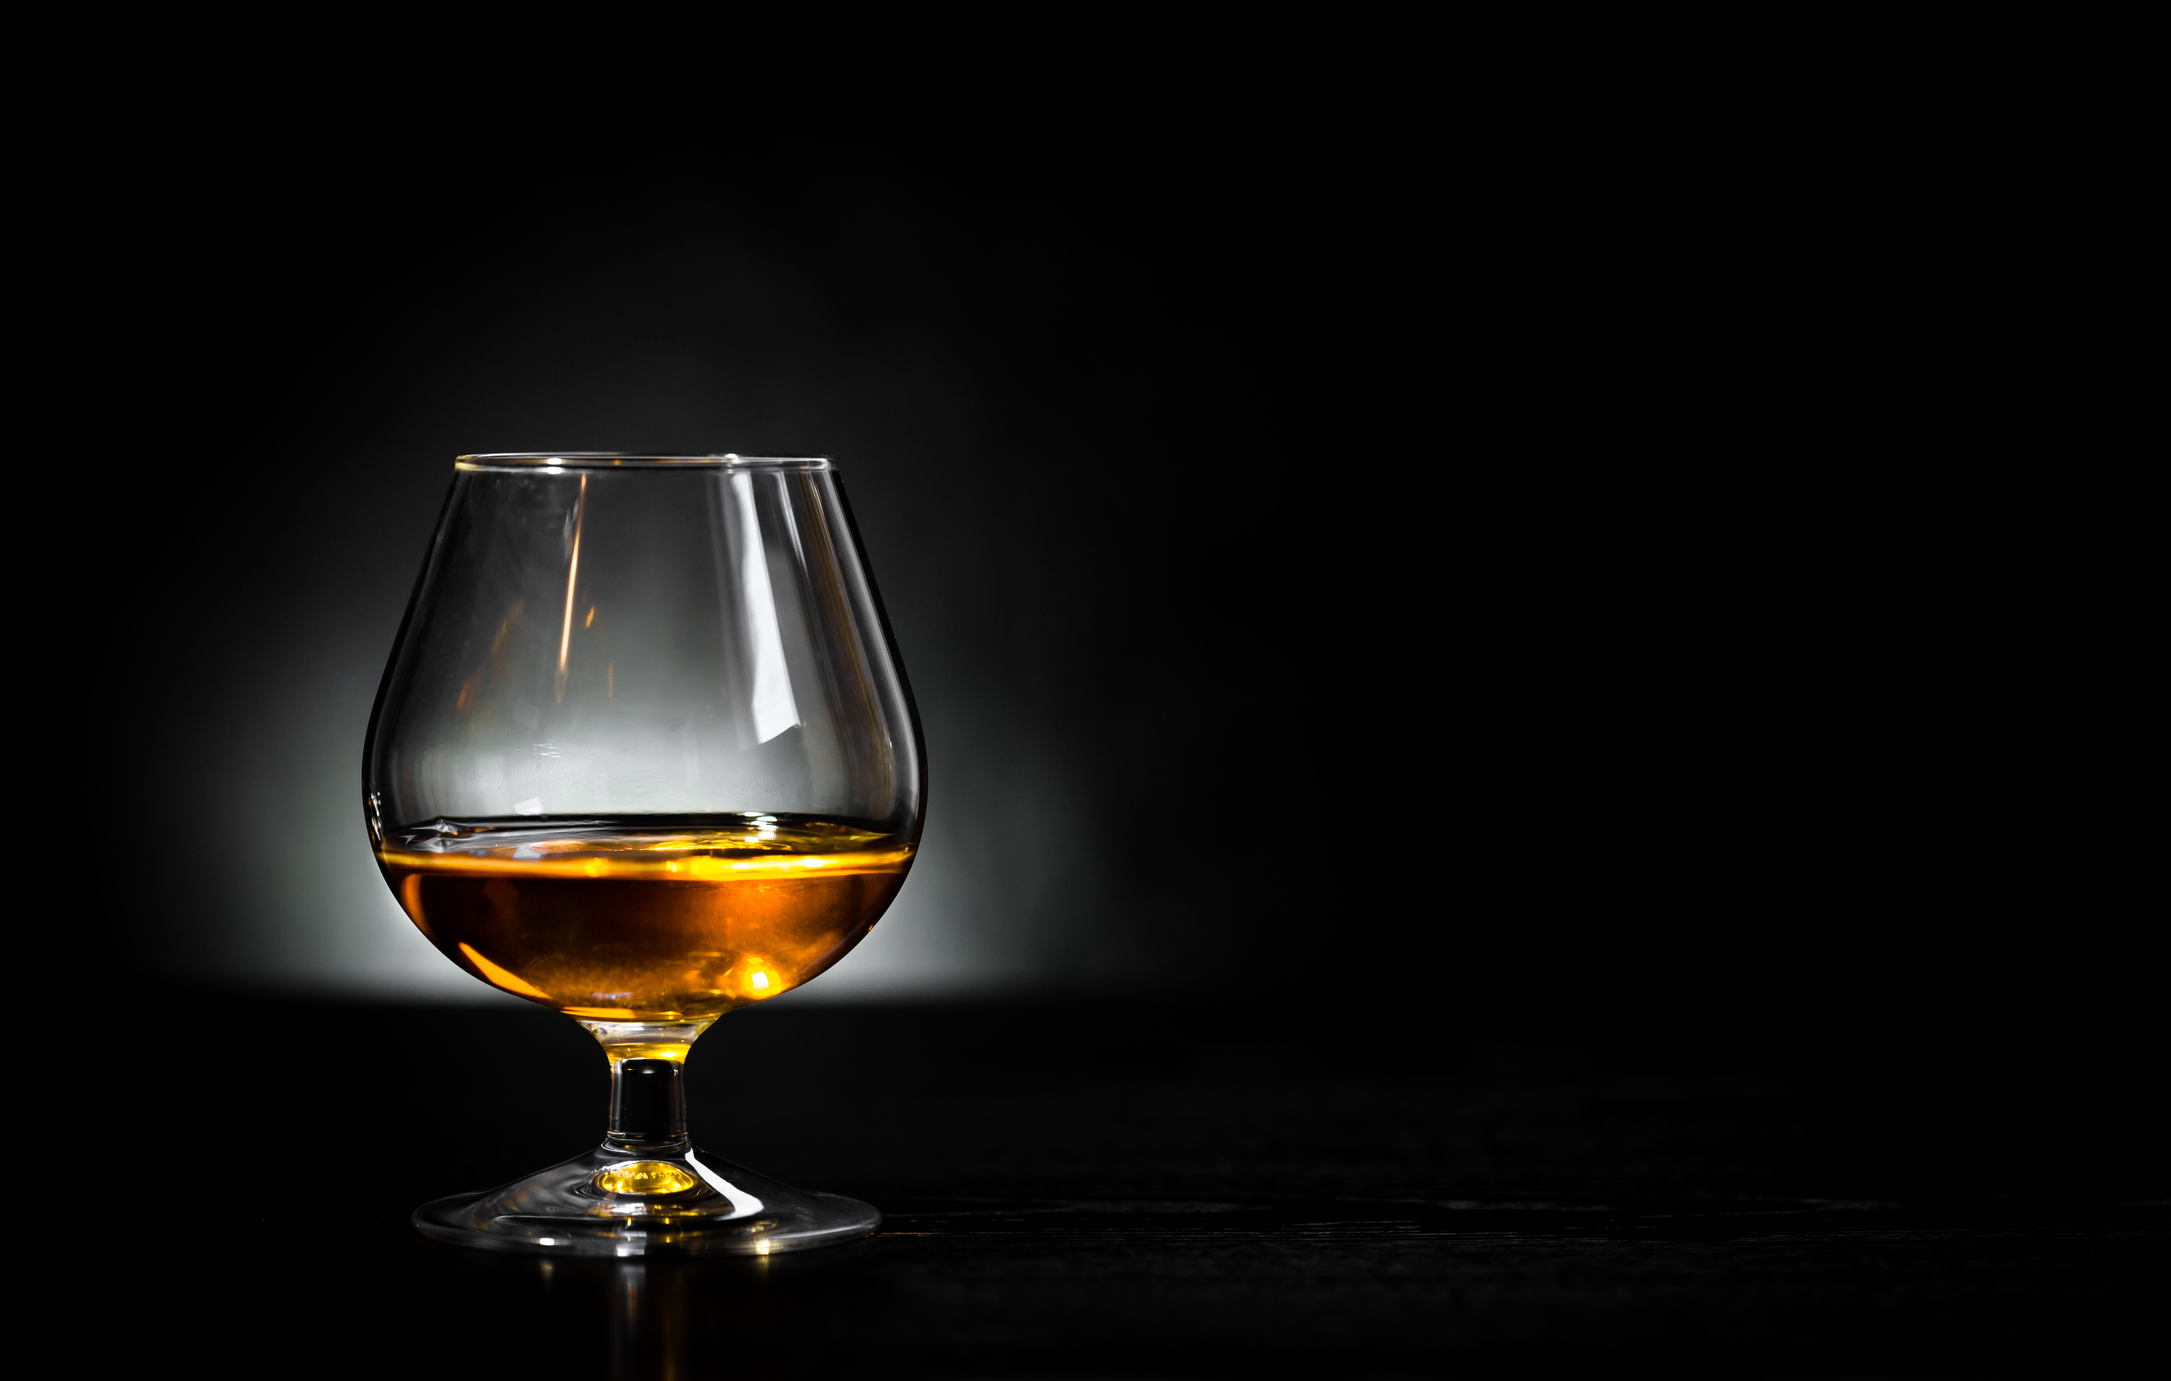 Cognac glass in black